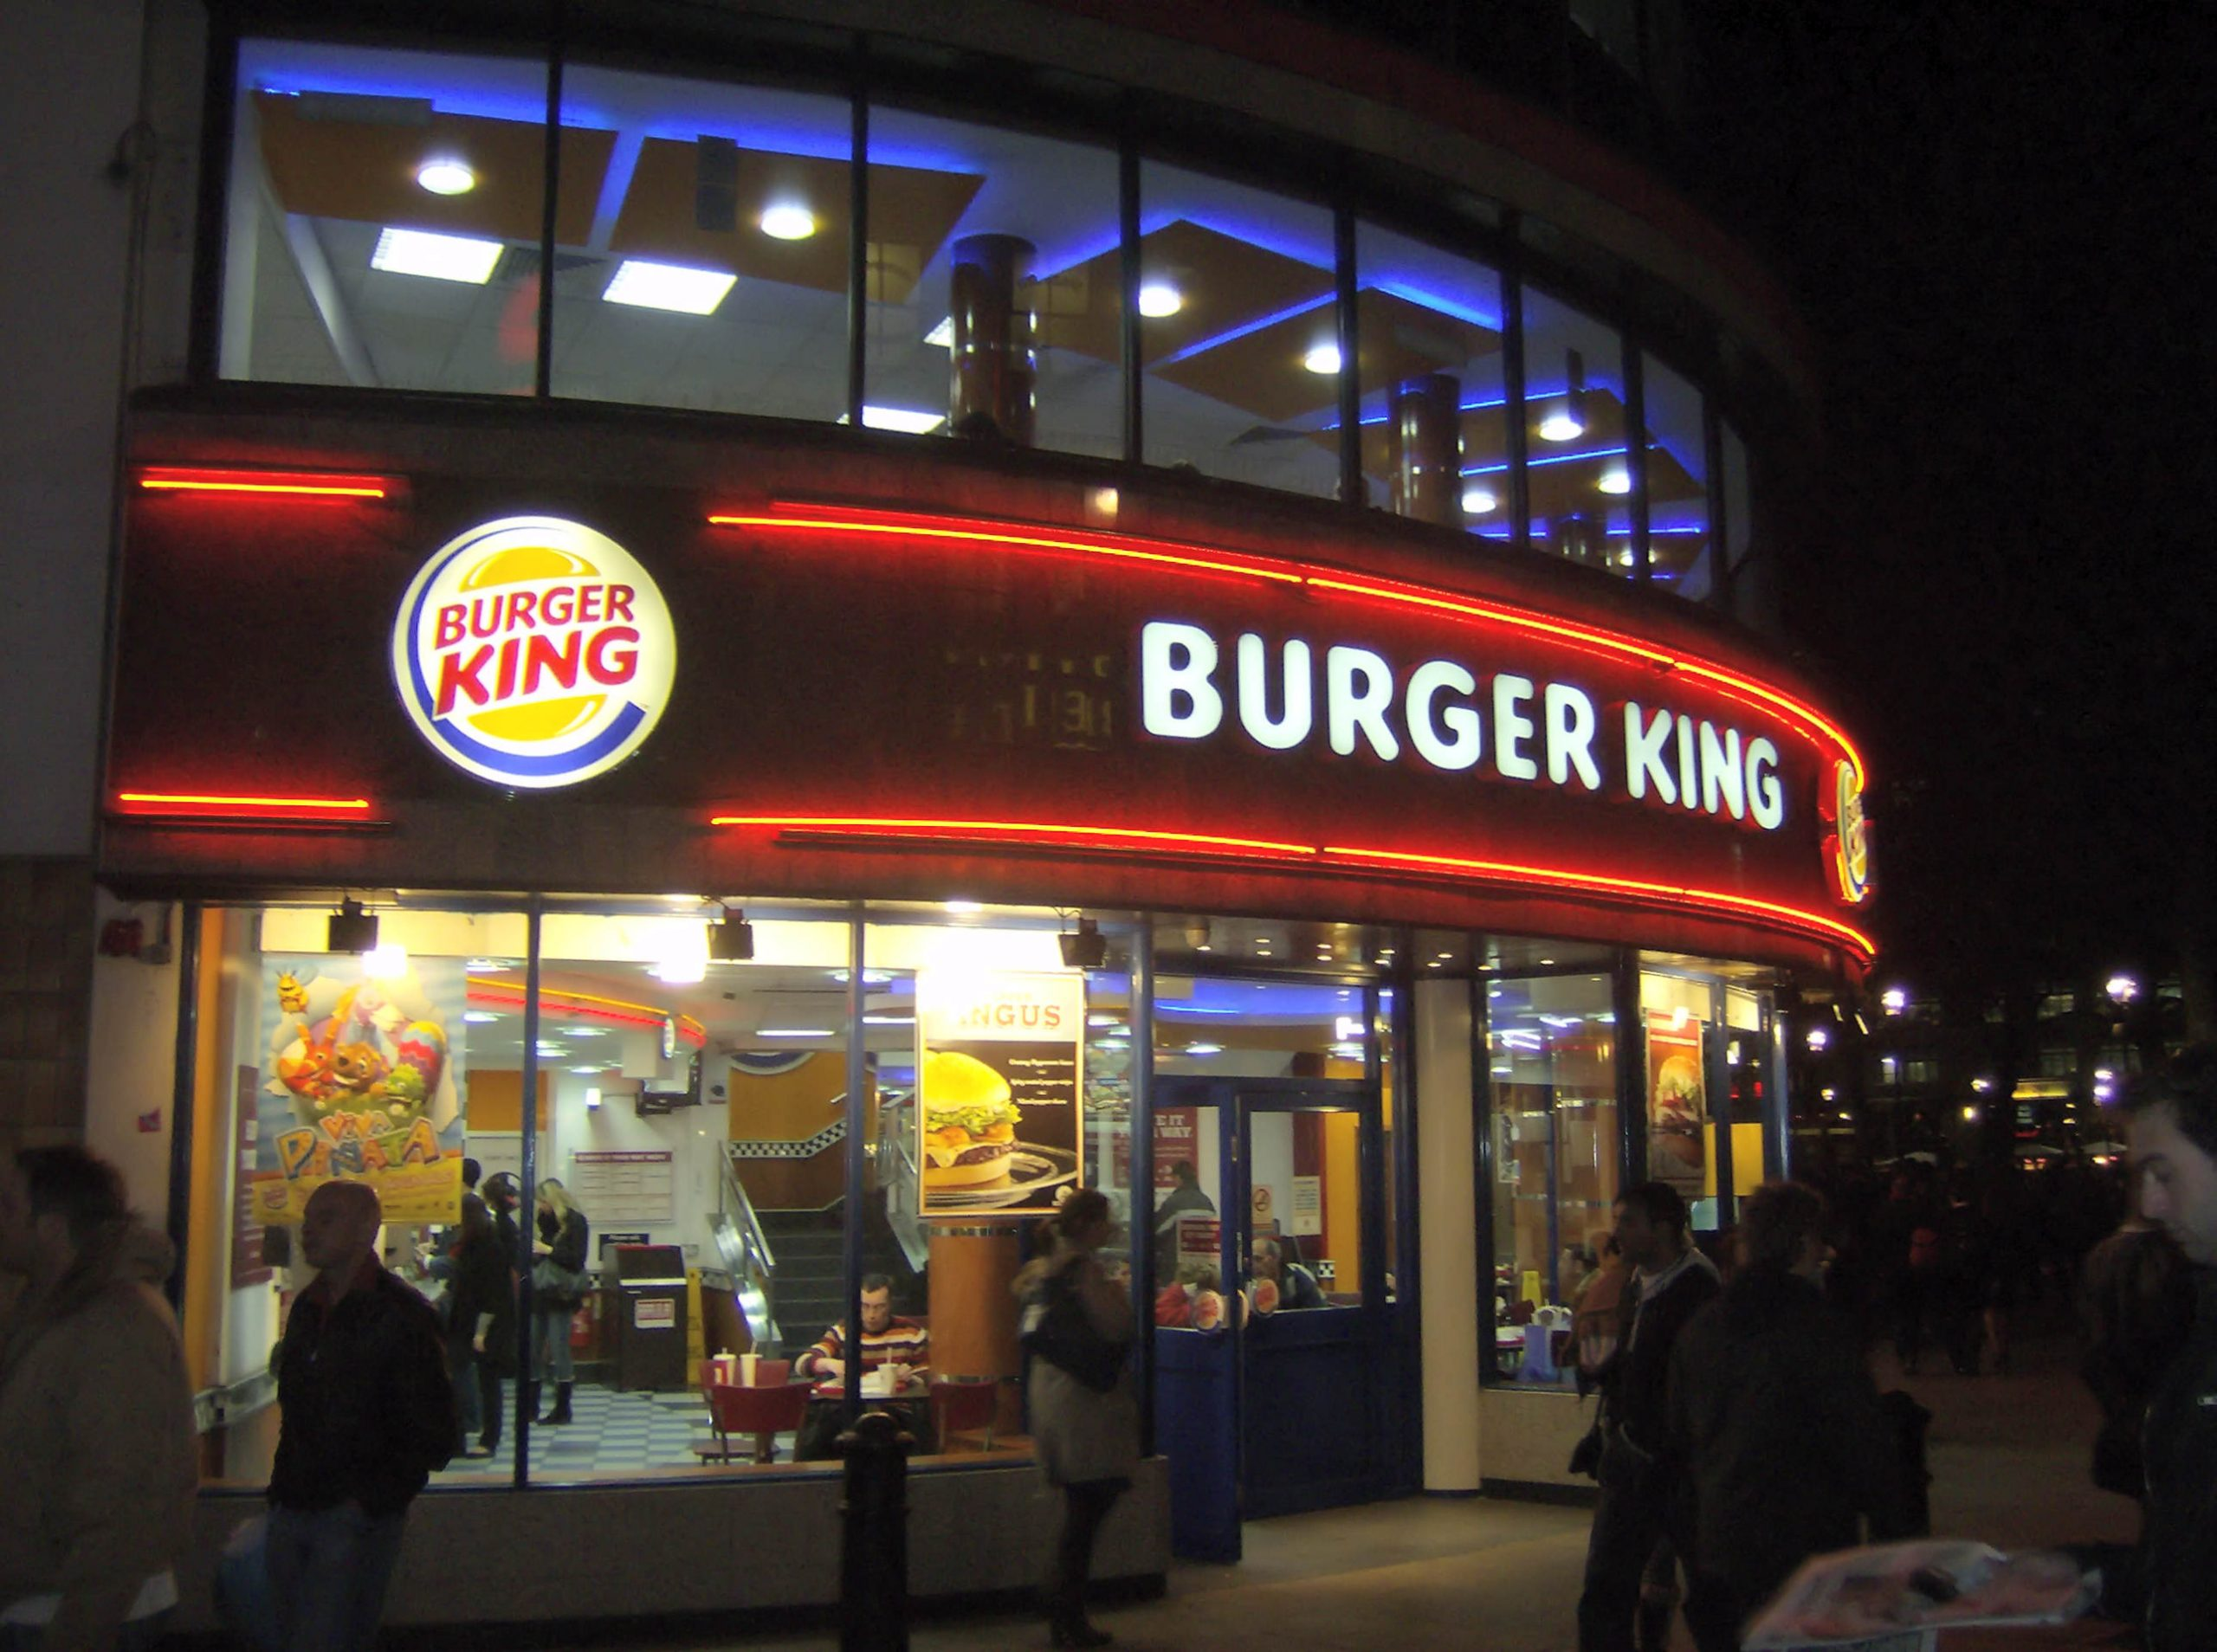 Exterior, at night, of a busy Burger King restaurant. The signage is neond with the BK logo and name prominently displayed.